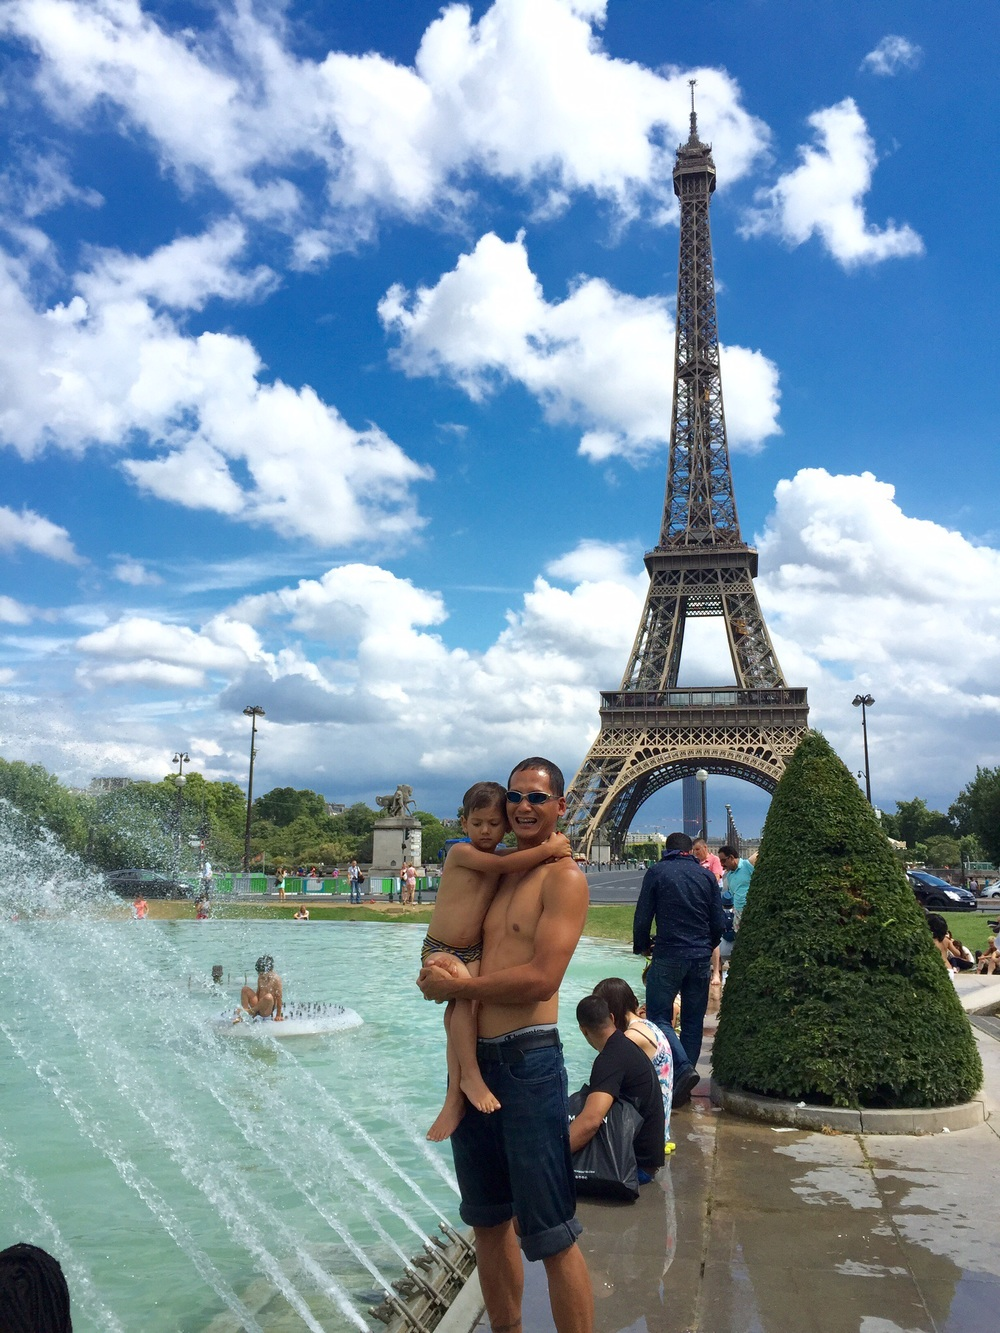 My husband and son at the Trocadero fountain and Eiffel Tower